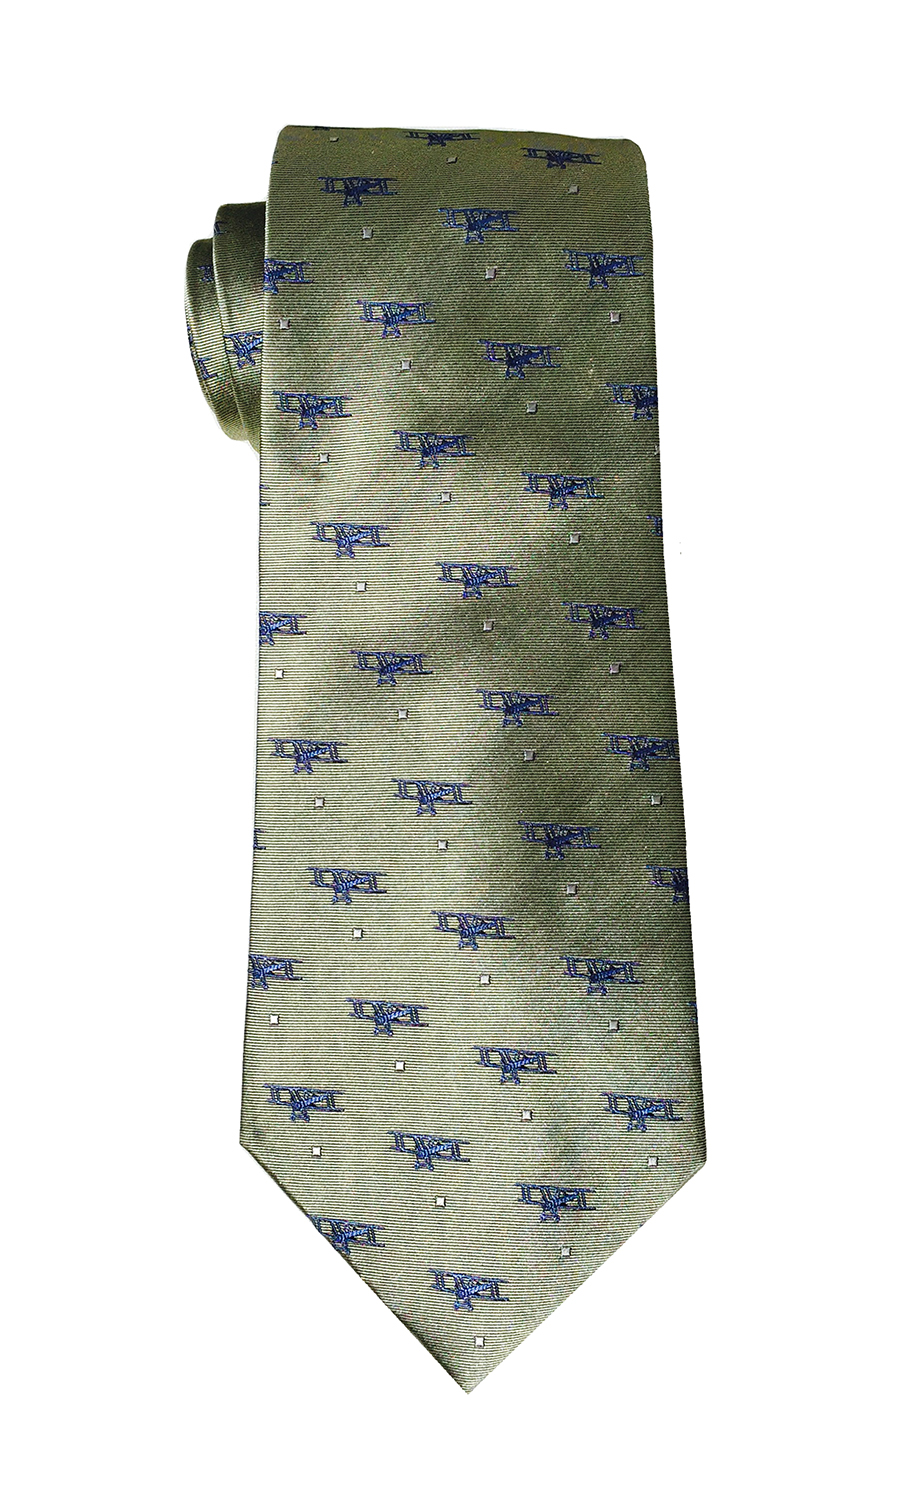 doppeldecker design designer aviation airplane aircraft silk bow tie bowtie biplane